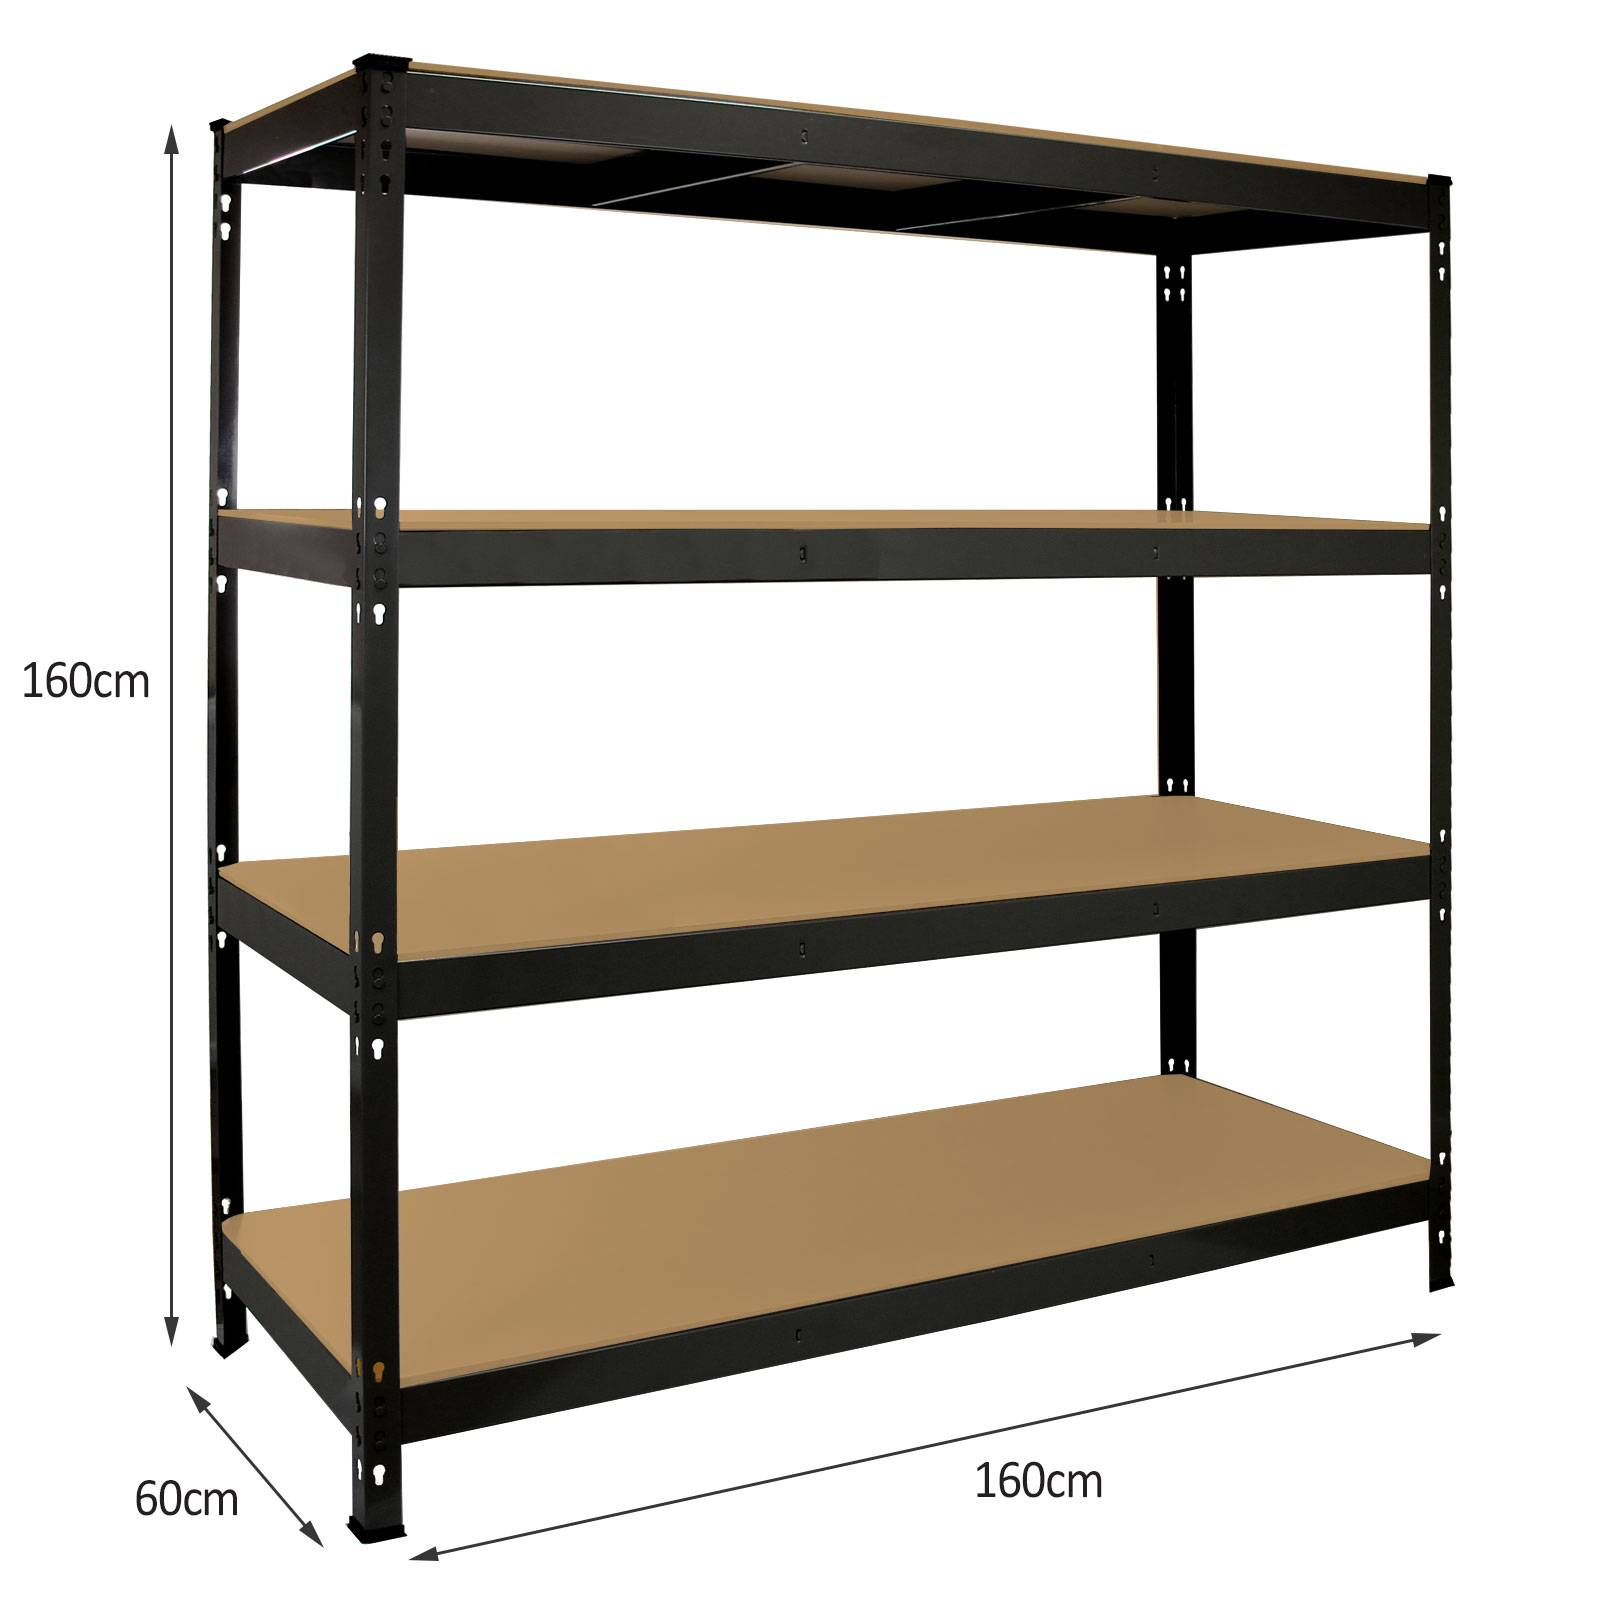 shelving units for storage garage shelving heavy duty racking 4 tier unit boltless 26053